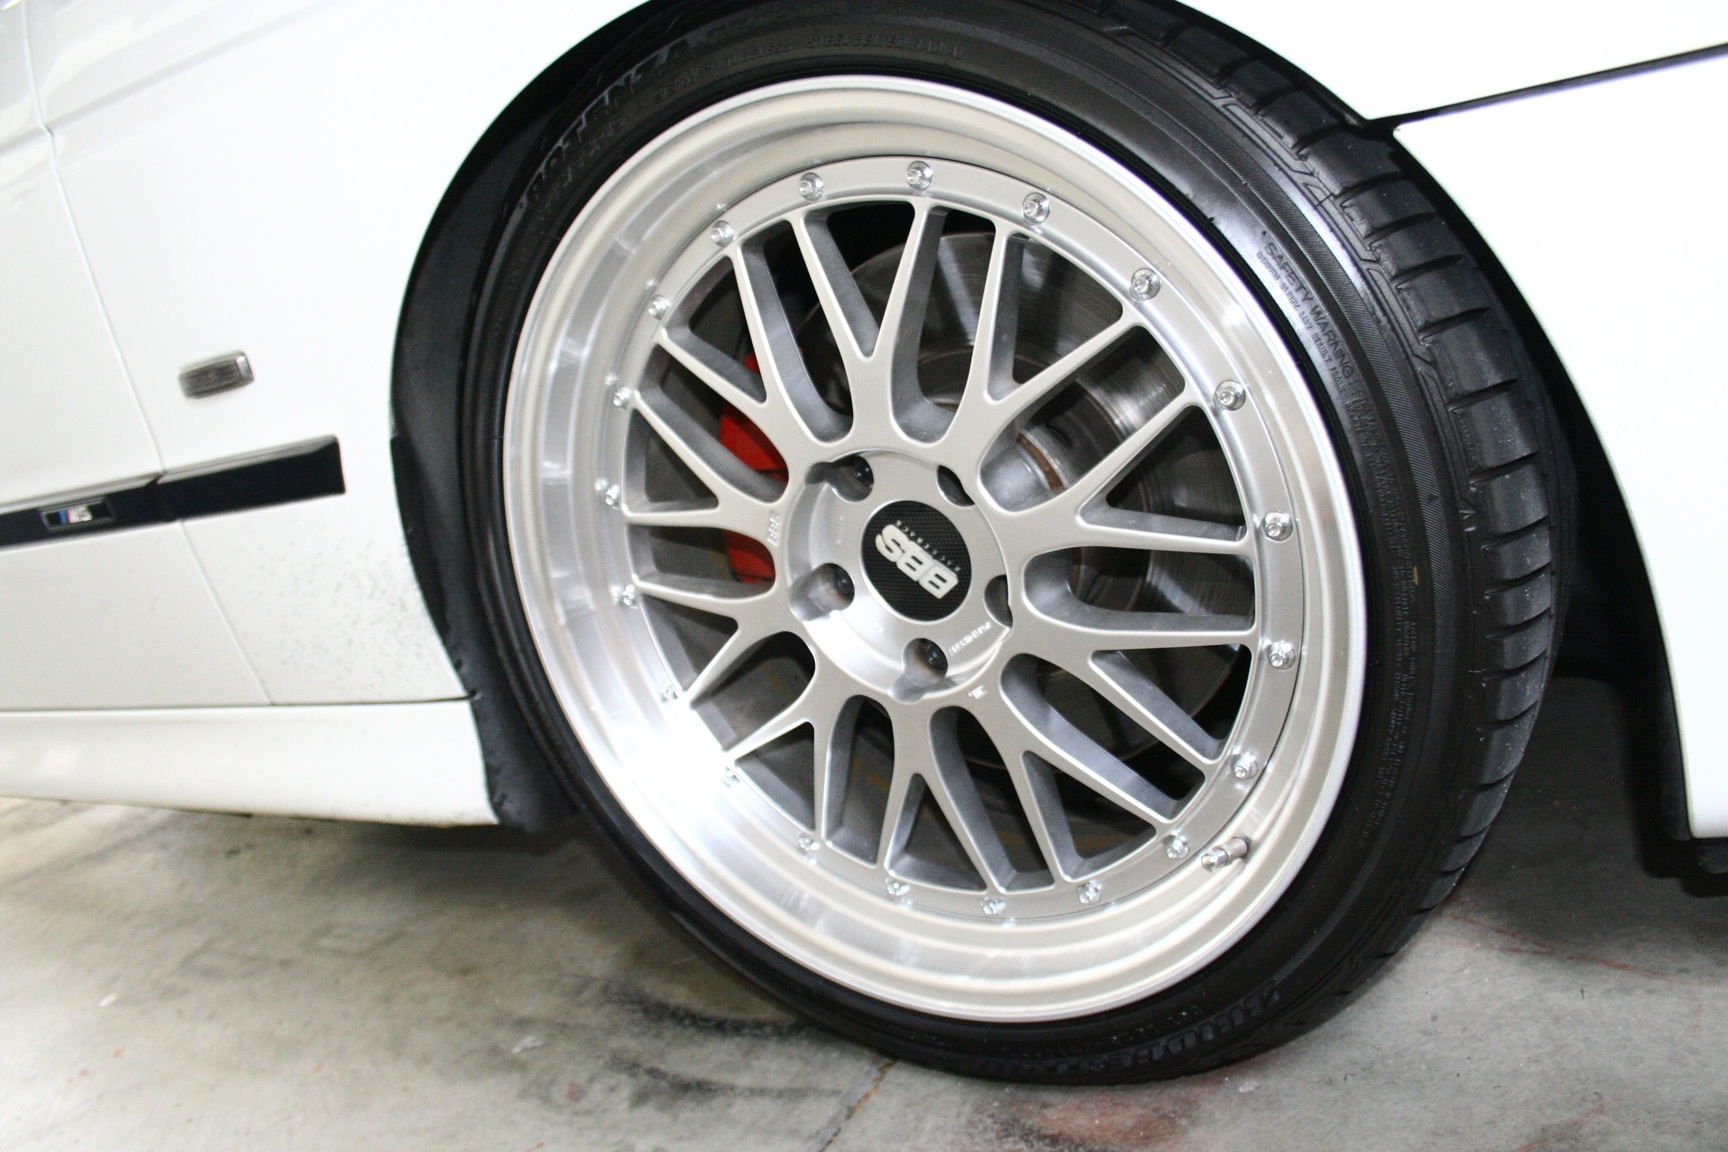 Authentic BBS LM 19x8.5